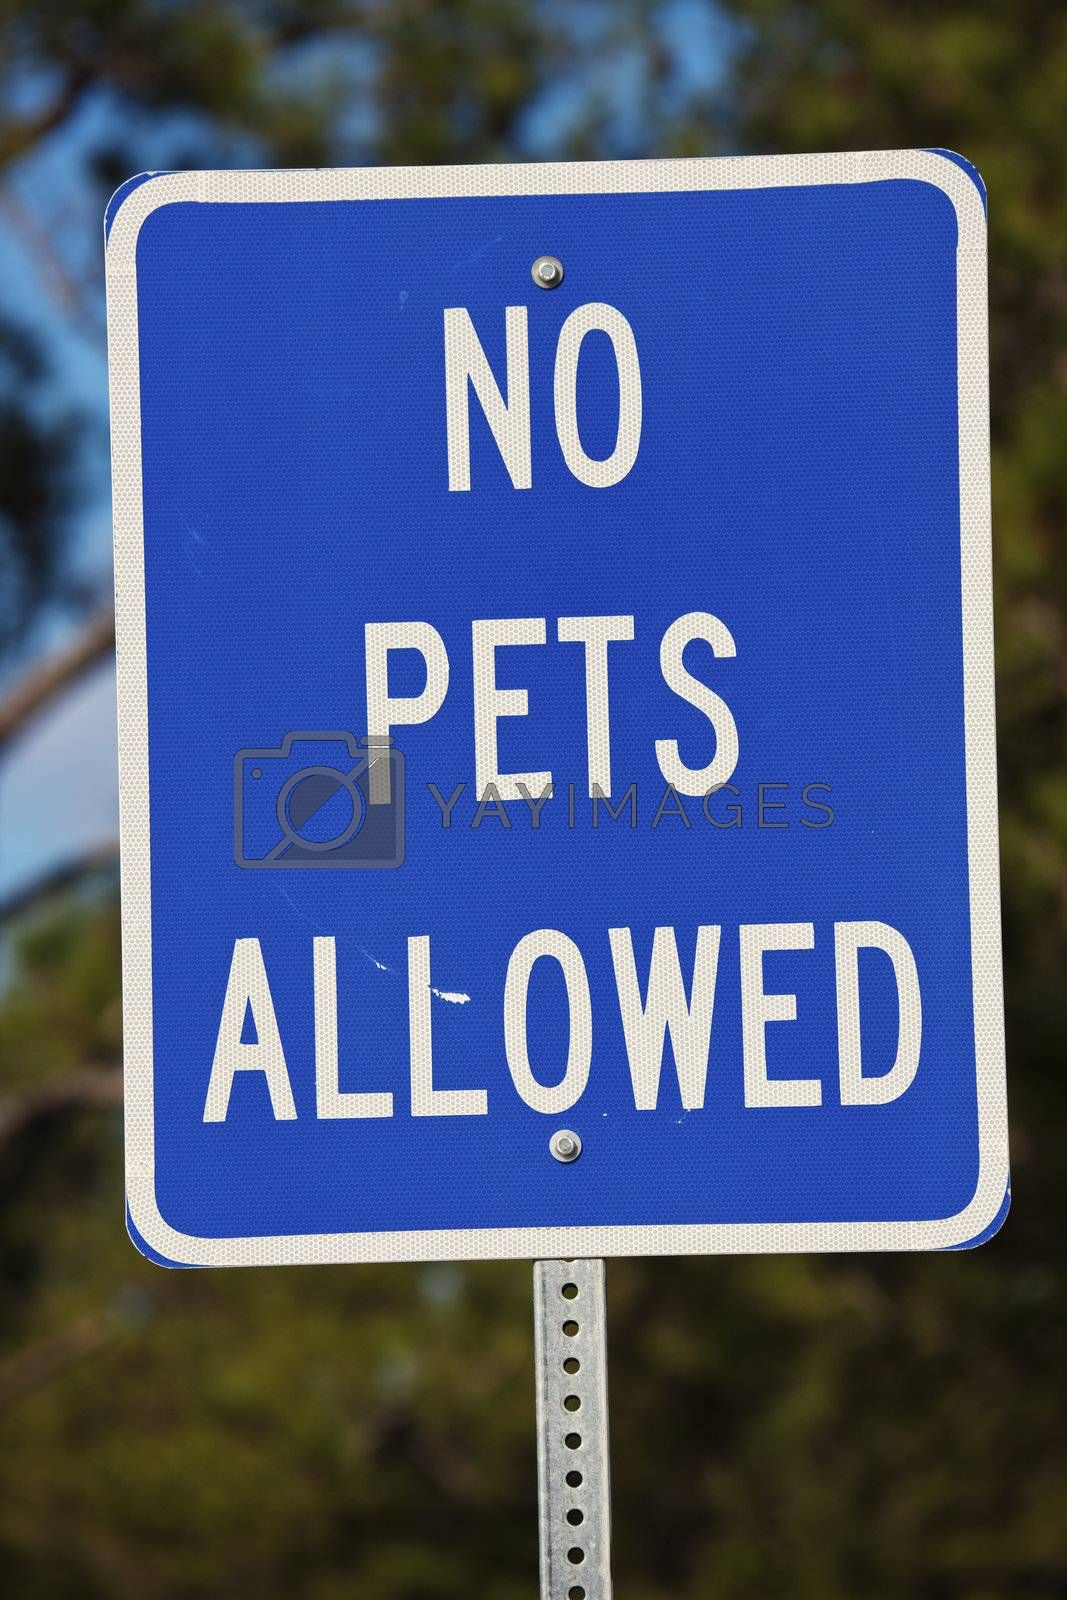 No pets allowed sign - seen in the park